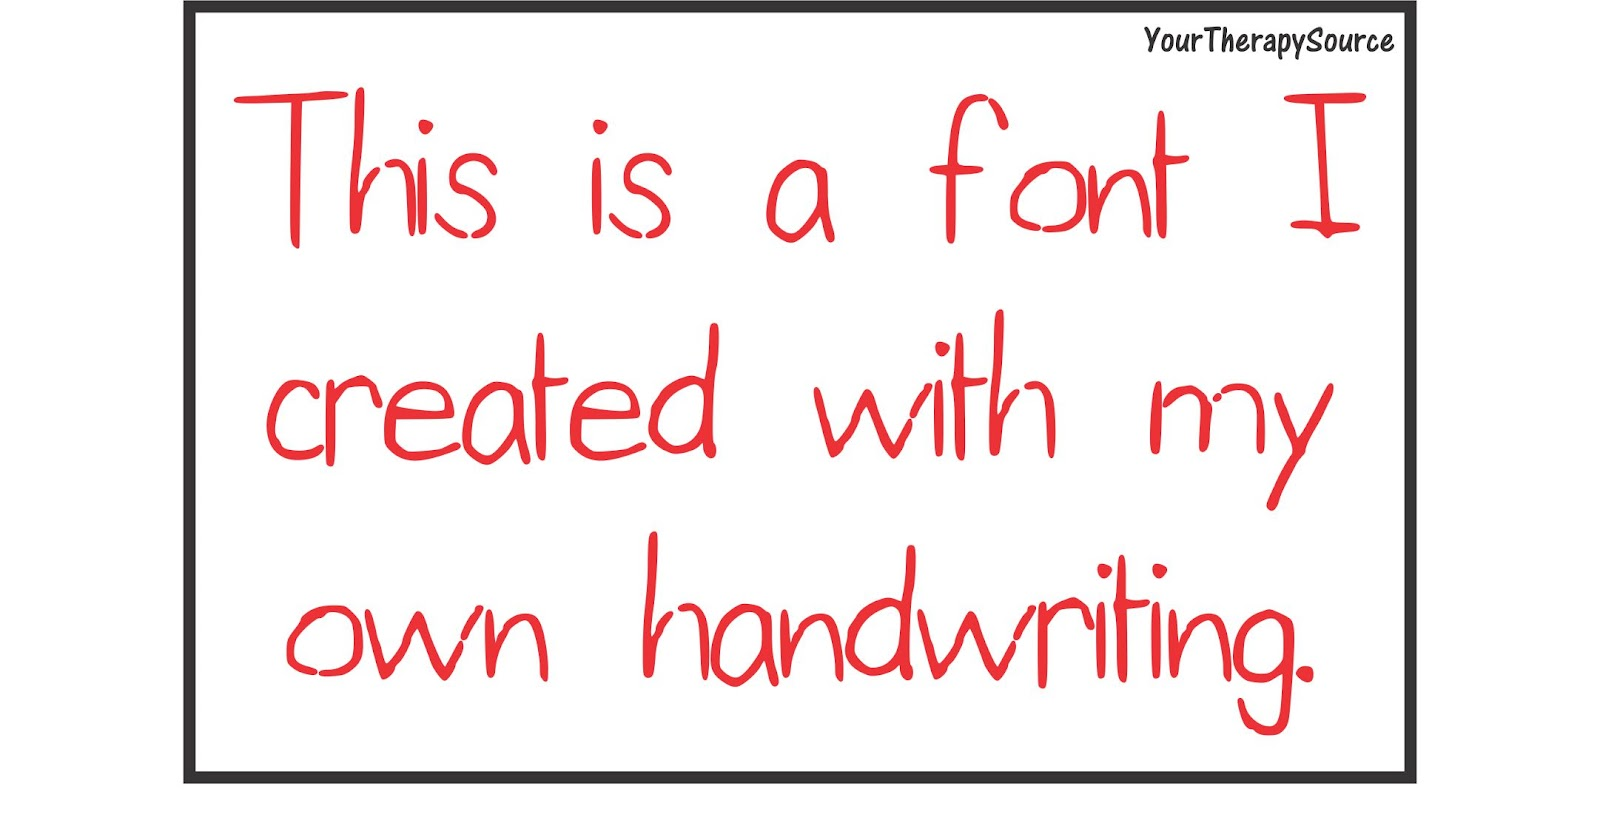 Create Your Own Font | Your Therapy Source - www.YourTherapySource.com